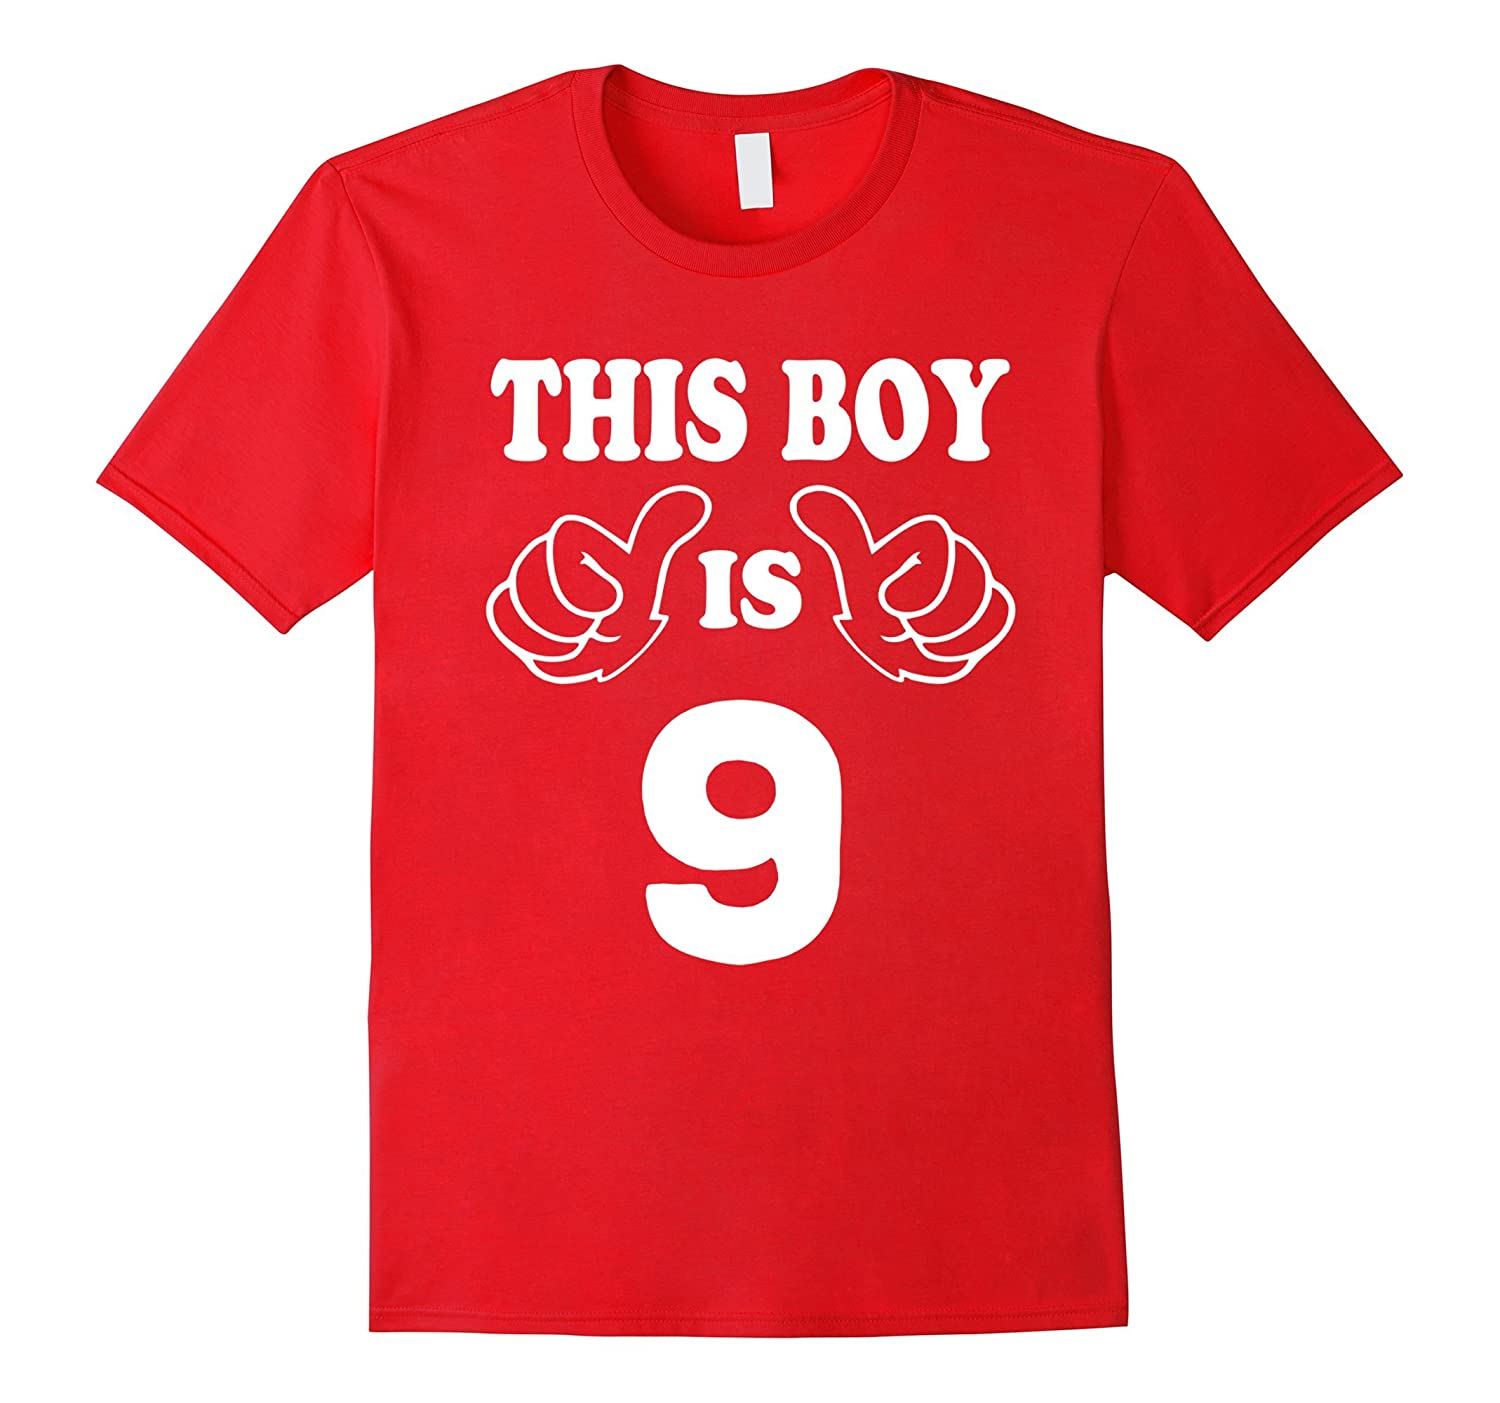 9 Year Old Shirt For Boy Kid 9th Birthday Gift Idea 2008 TD Teedep